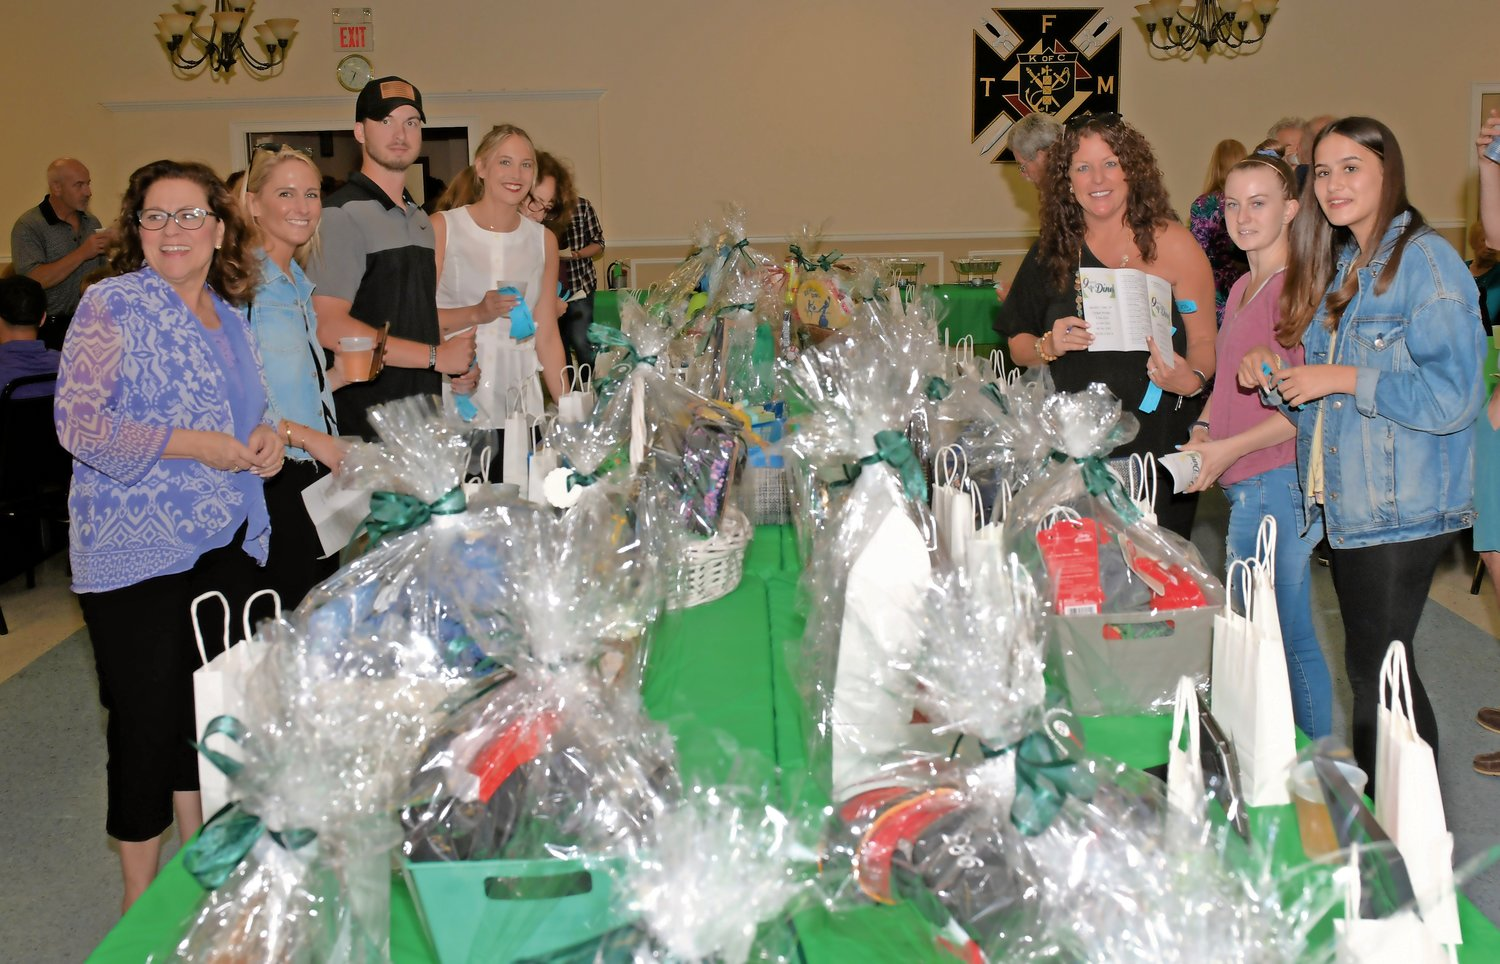 There were plenty of baskets for the lucky winners at the Glen Cove Hall of Fame's 9 and Dine event.